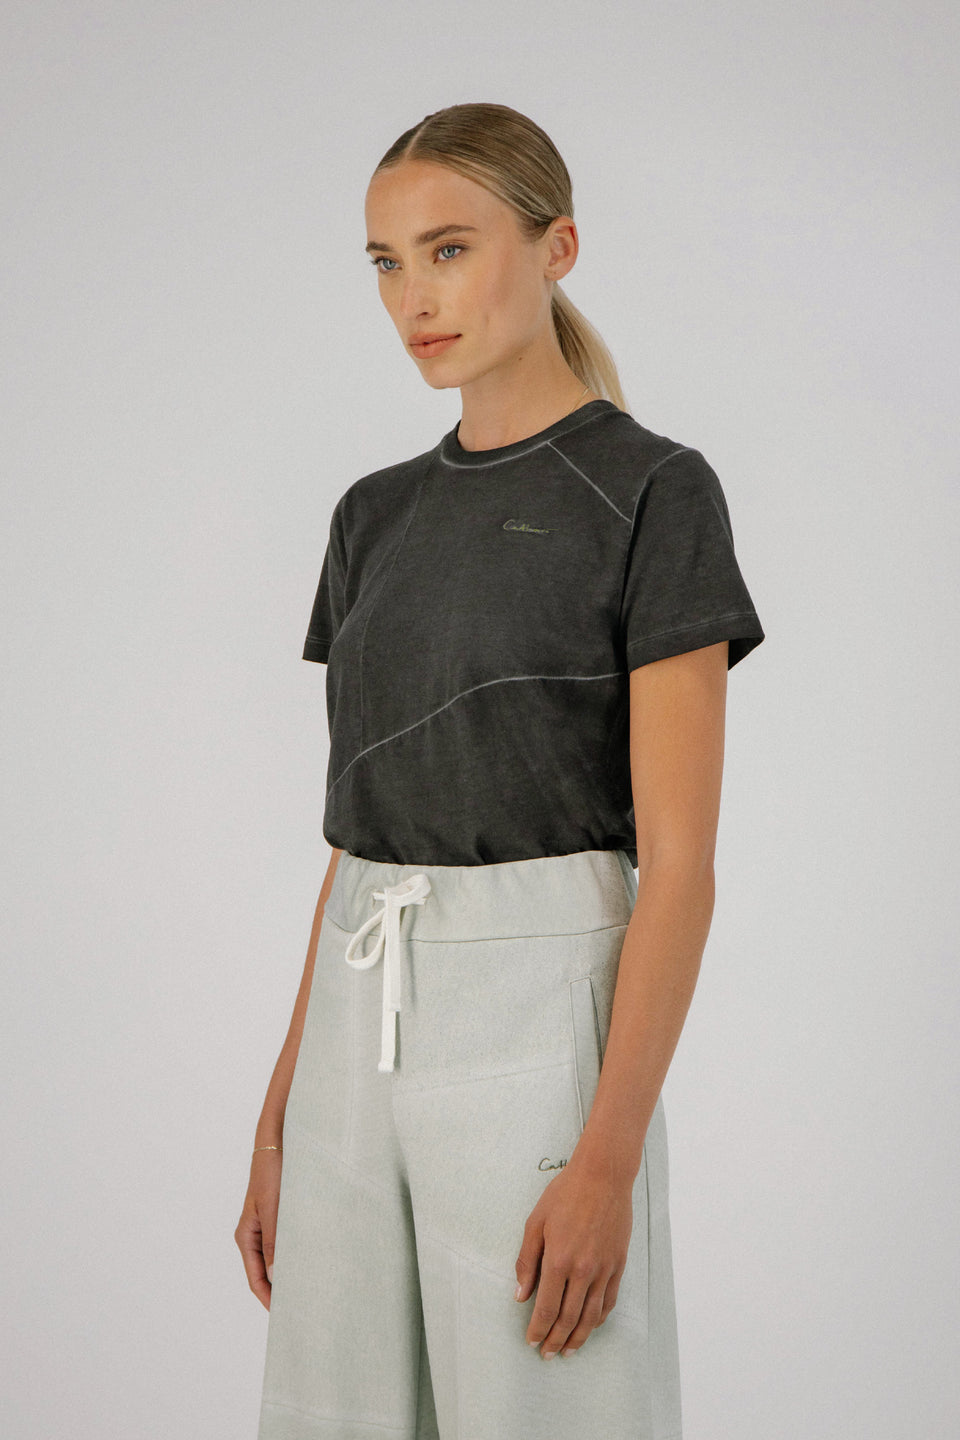 Deconstructed Tee Charcoal